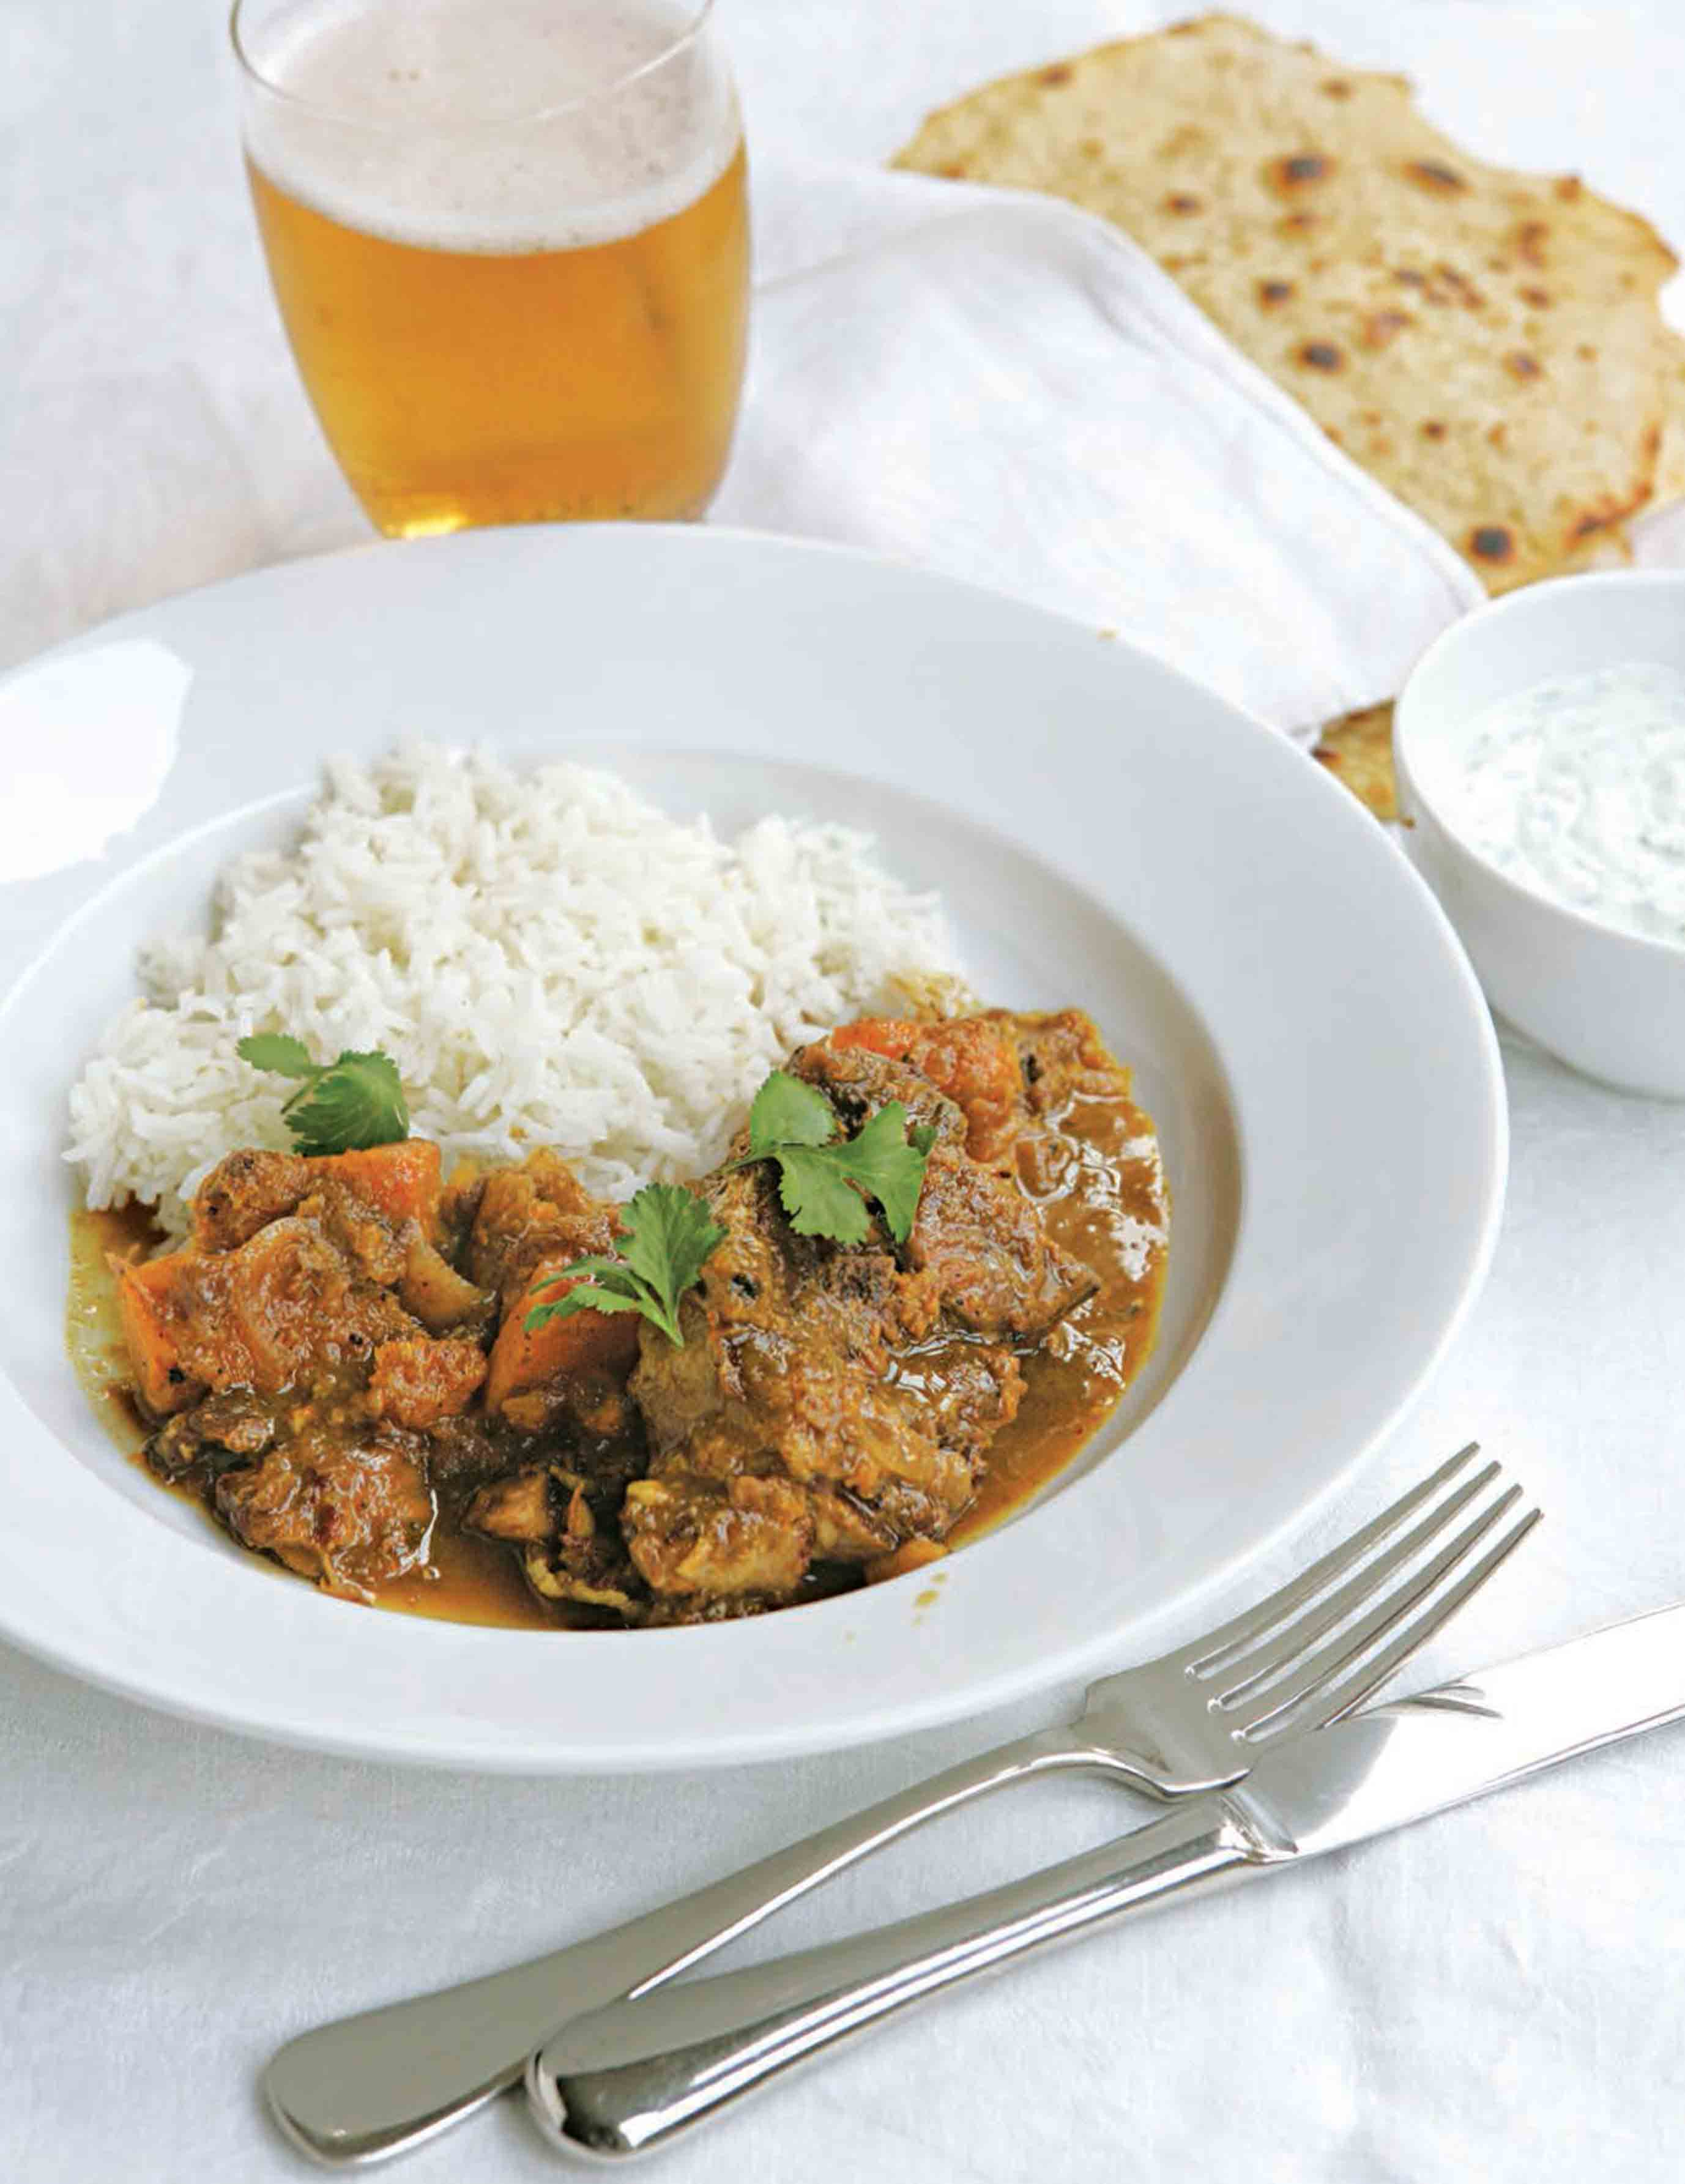 Lamb and squash curry